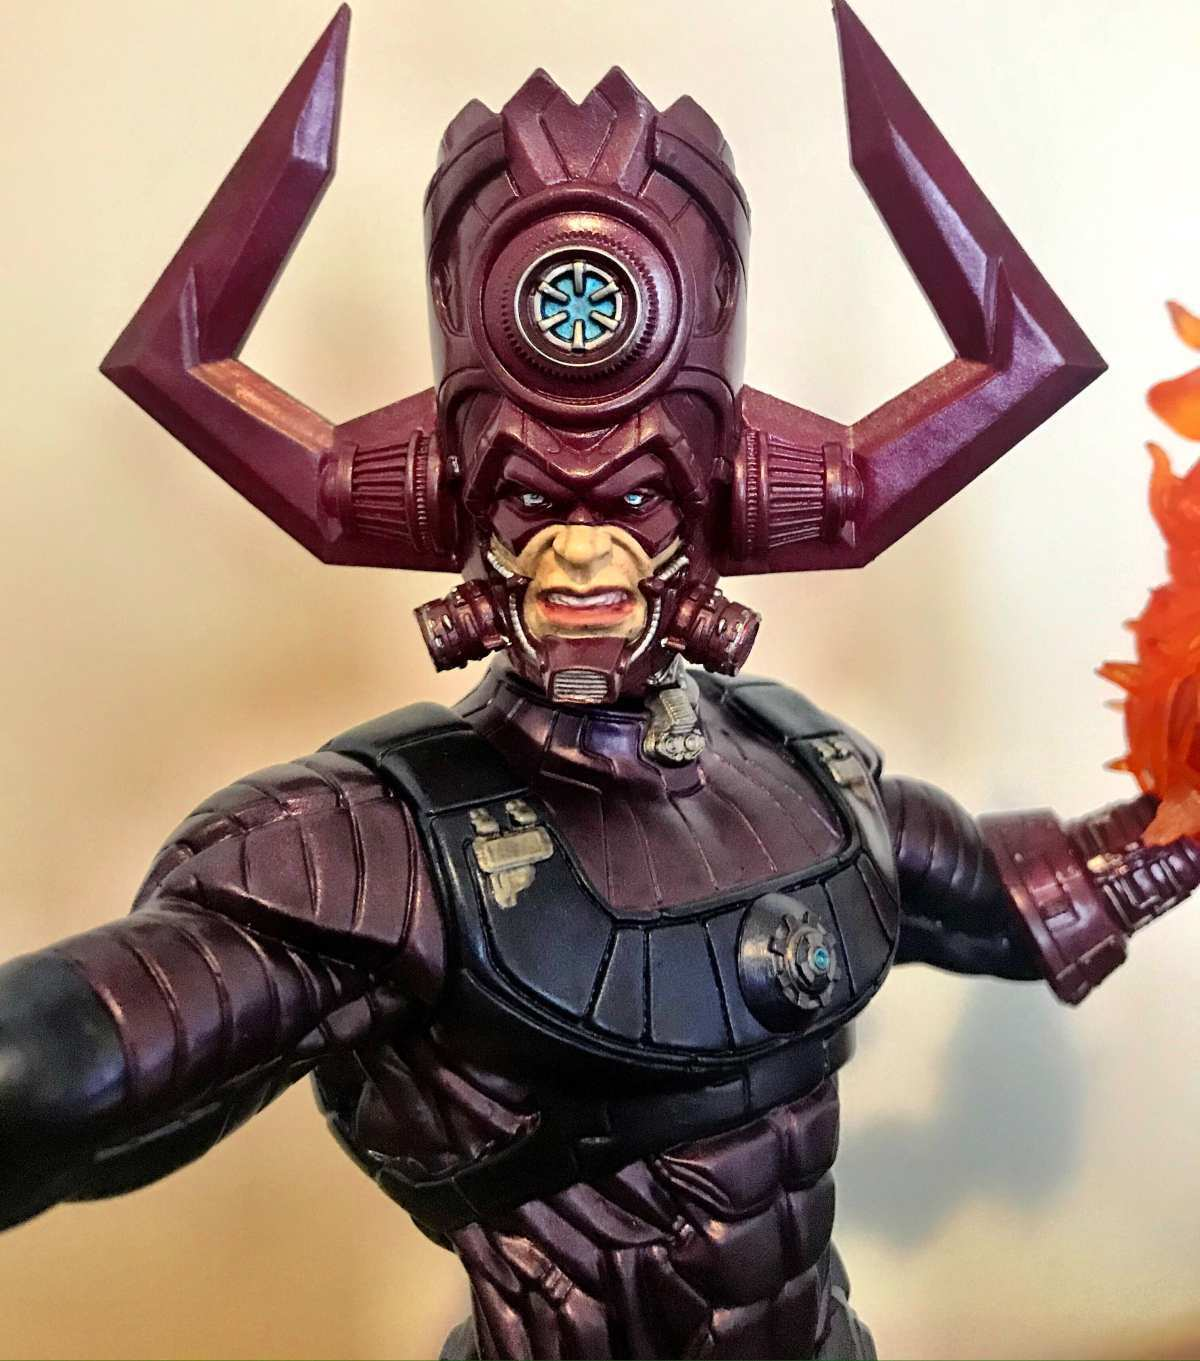 Marvel Heroclix Galactus - Devourer of Worlds Premium Colossal Figure 005